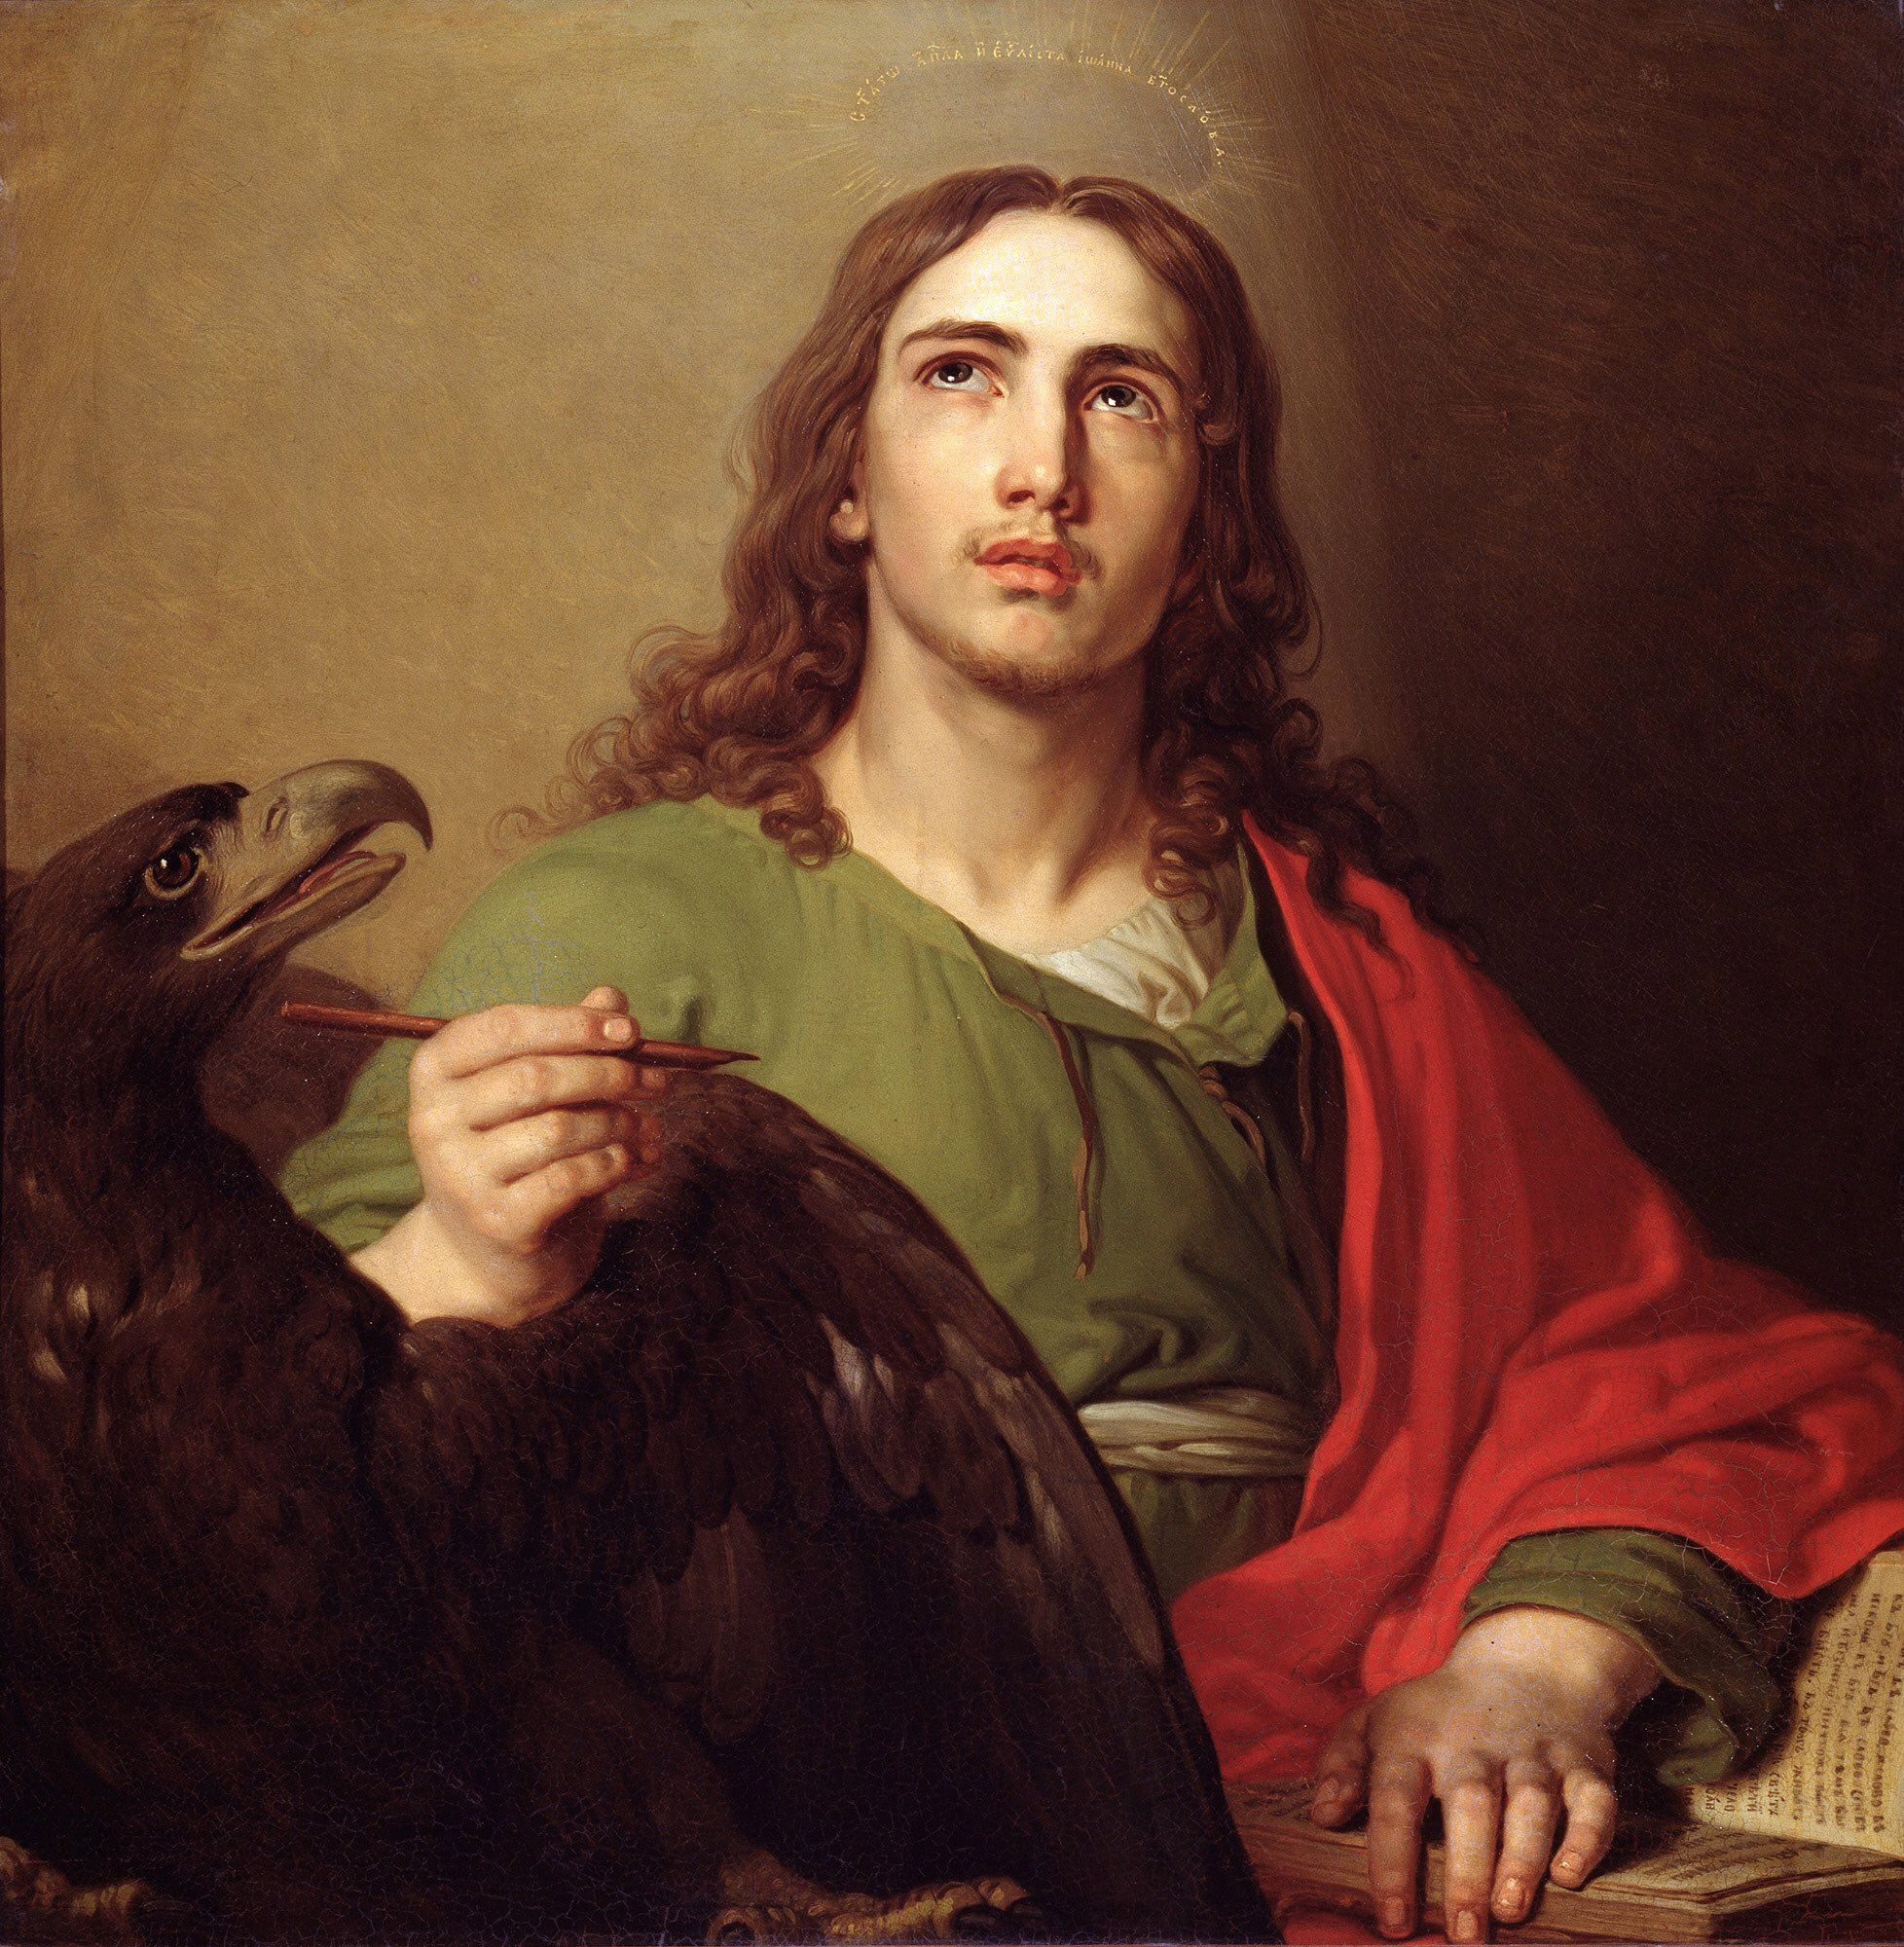 Lady Of Good Counsel On Twitter St John The Evangelist John The Evangelist Apostle John